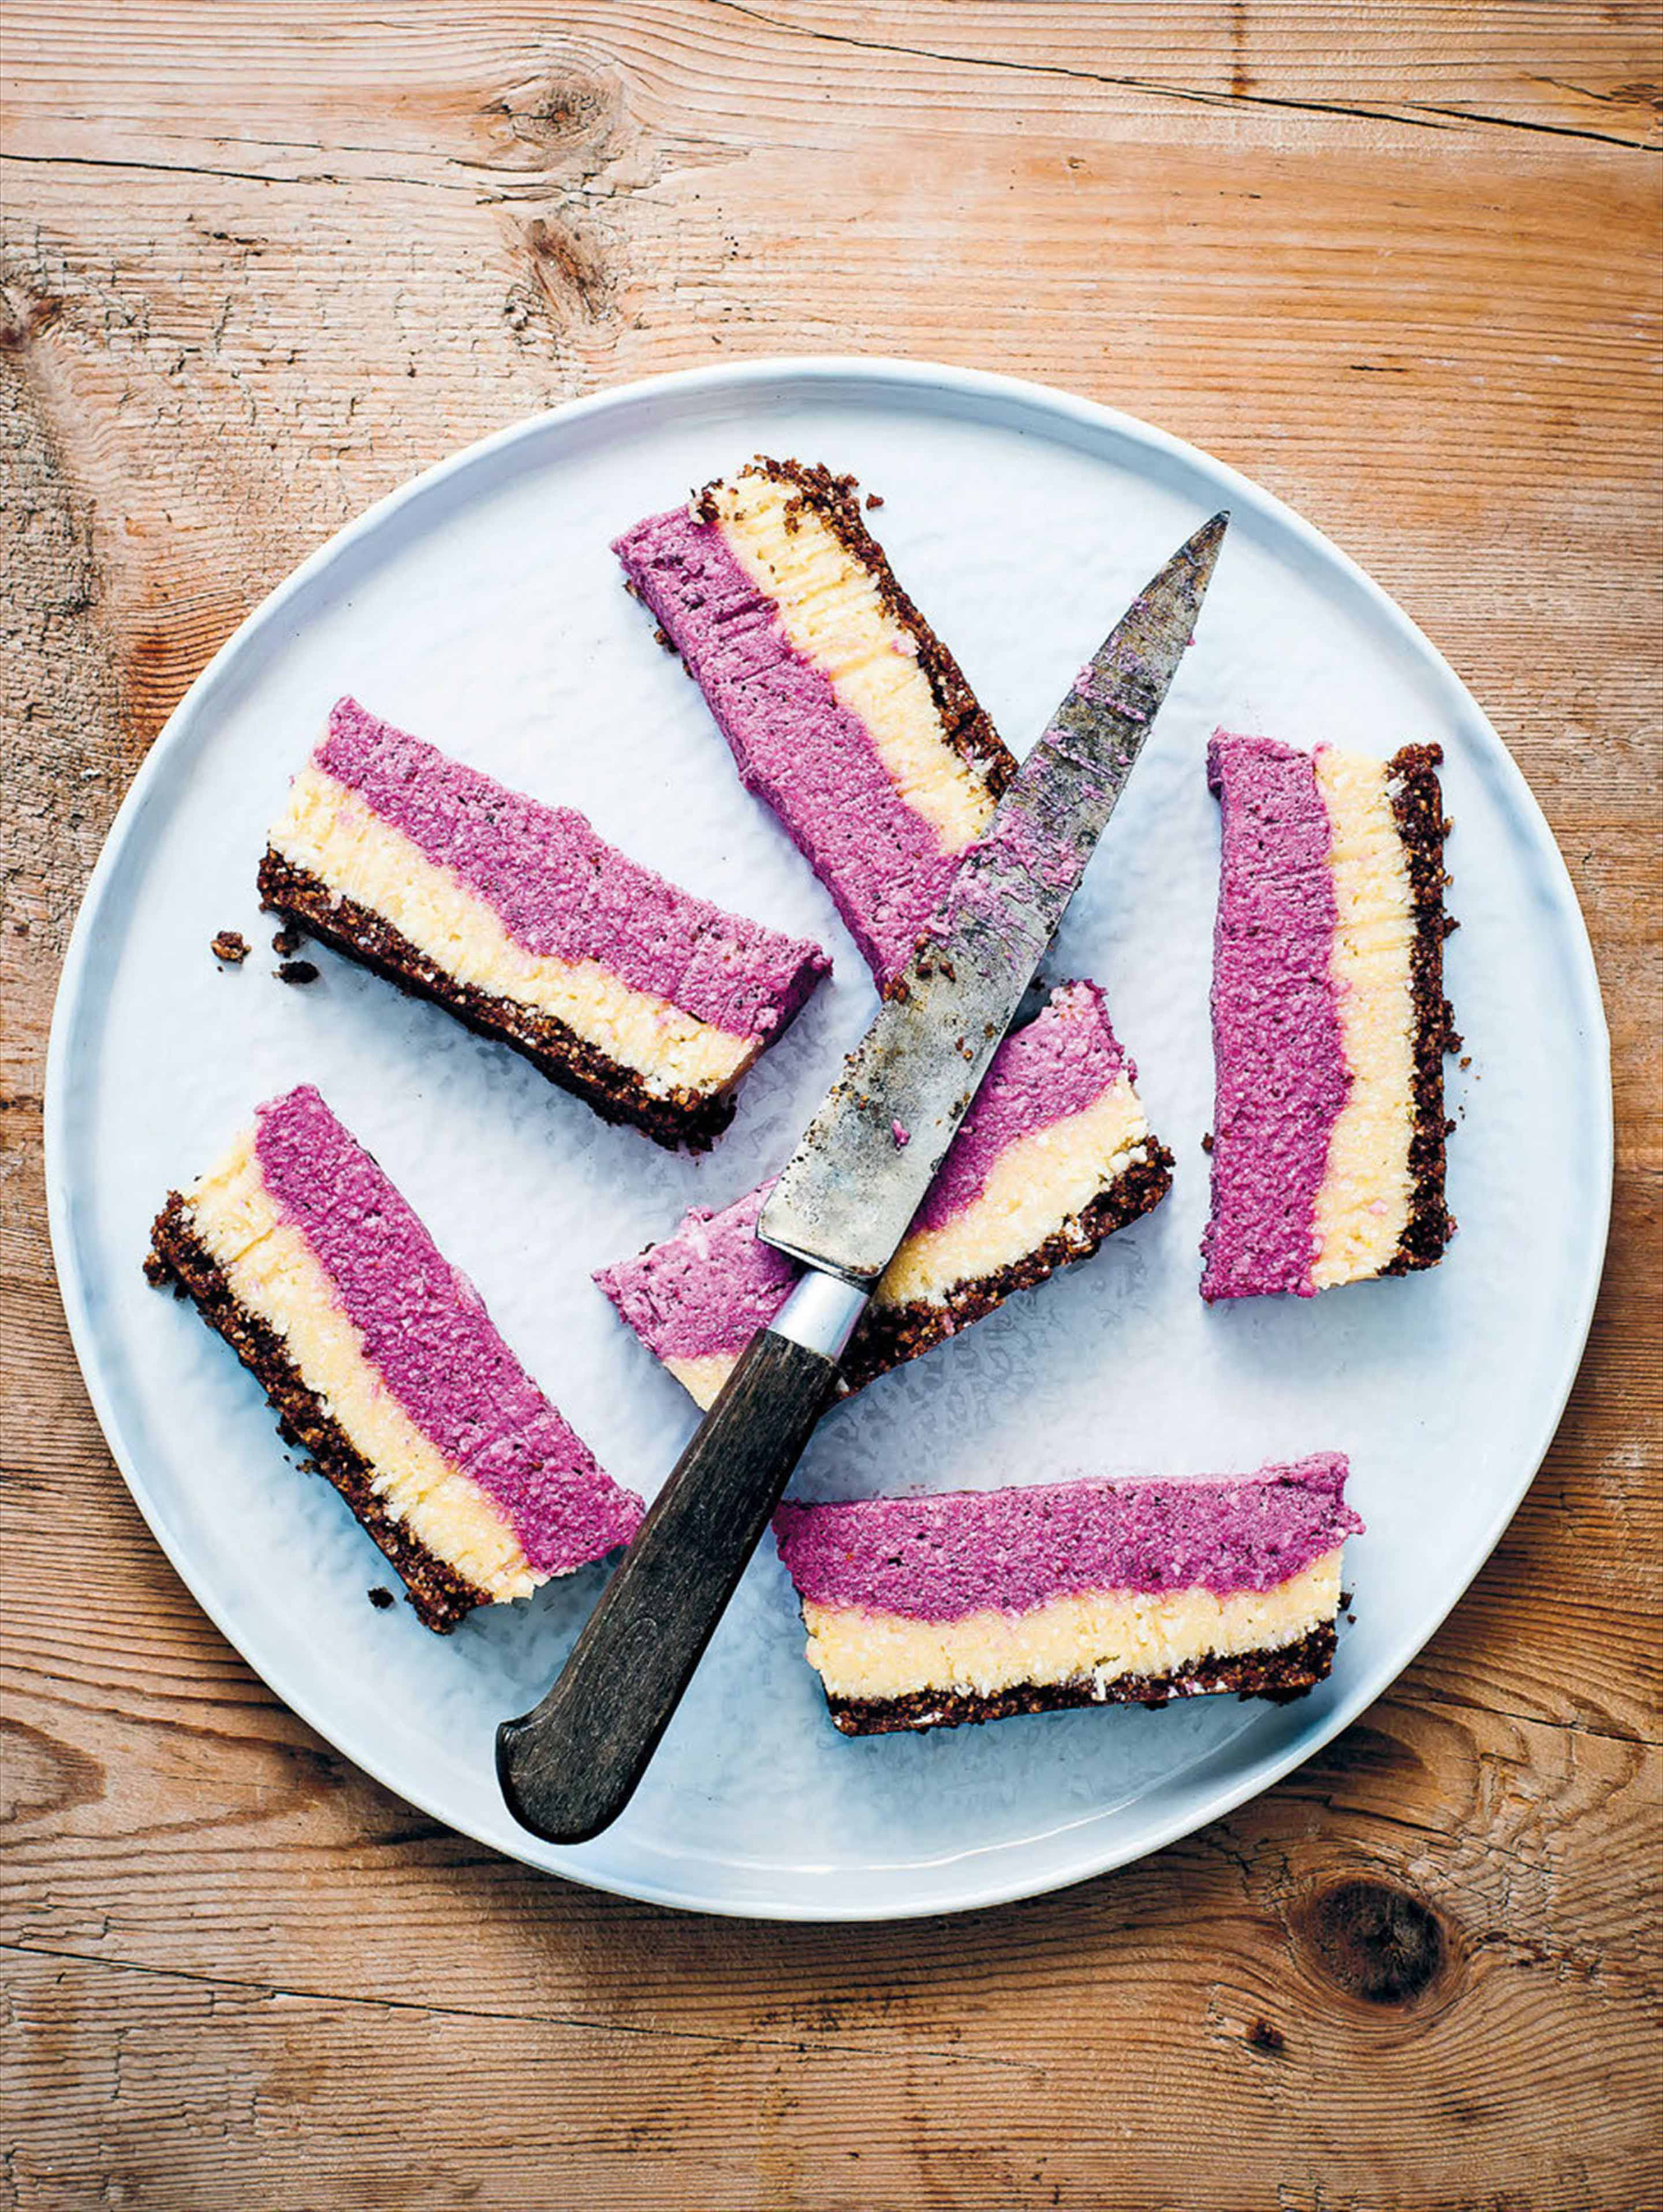 Blackberry & ginger cheesecake